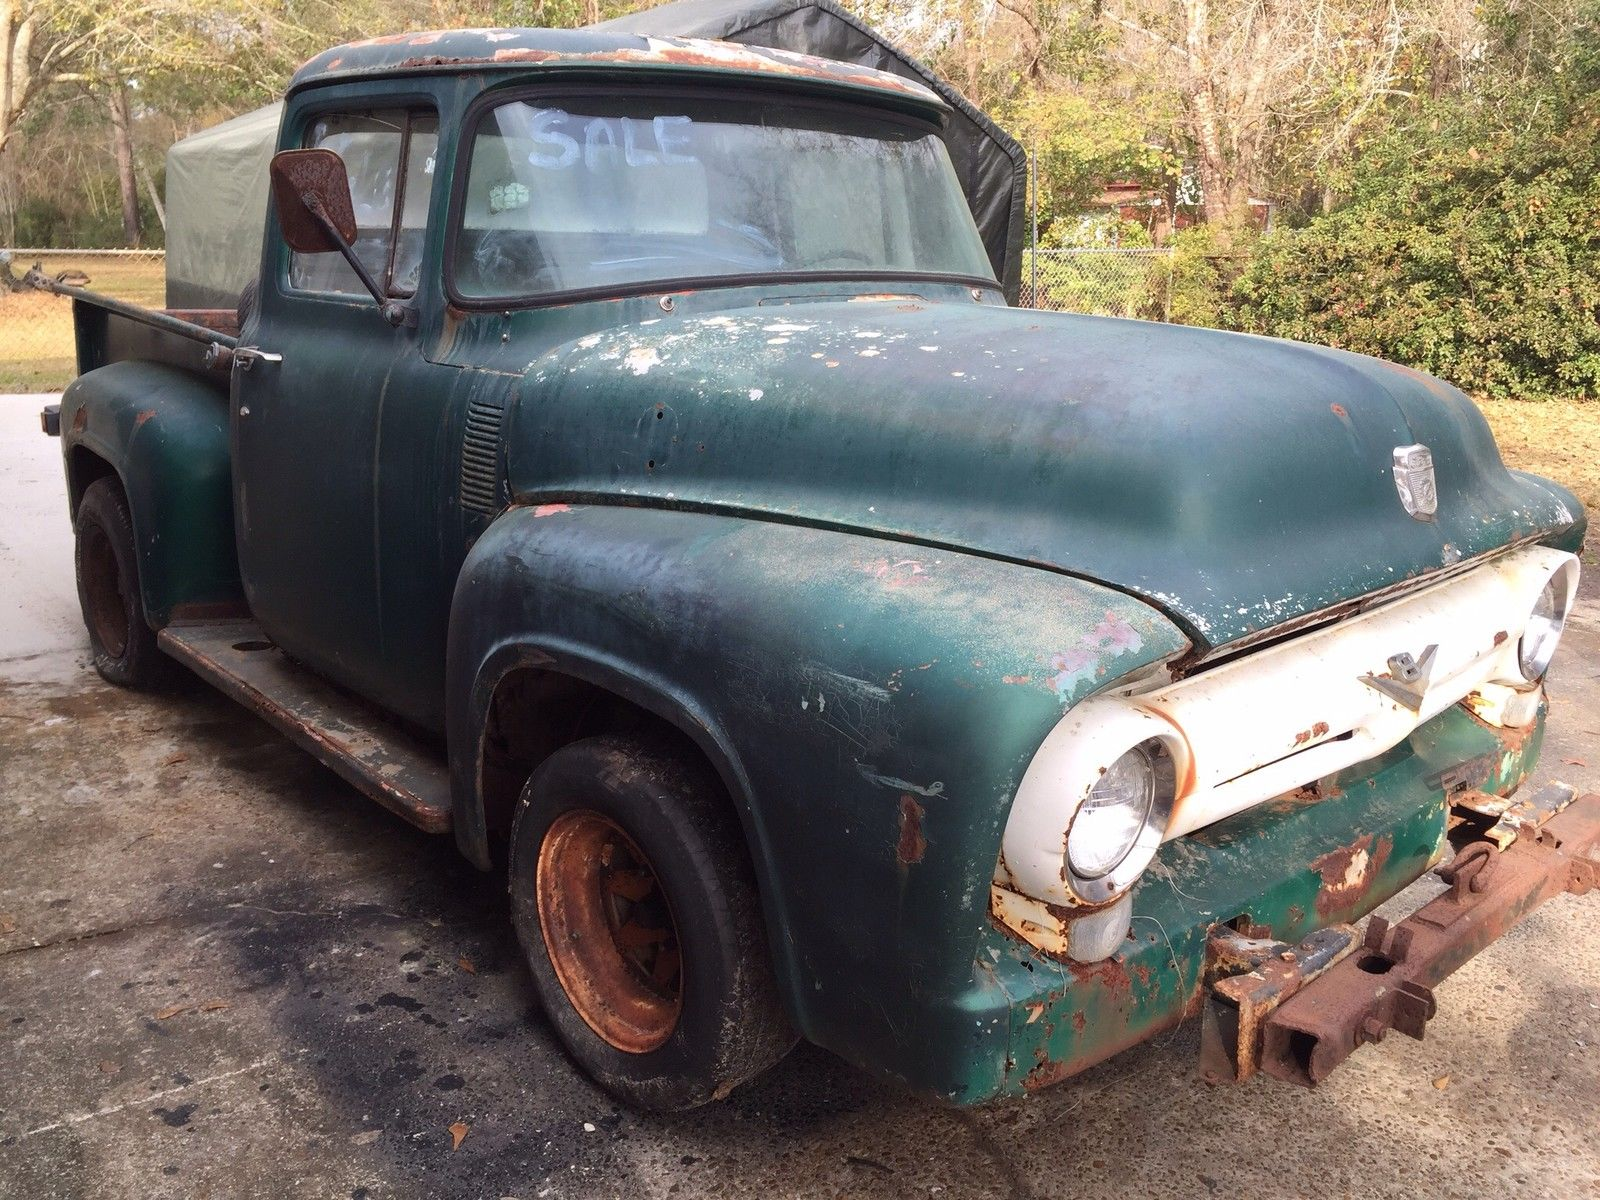 56 Ford F100 Restoration Project For Sale Upcomingcarshq Com